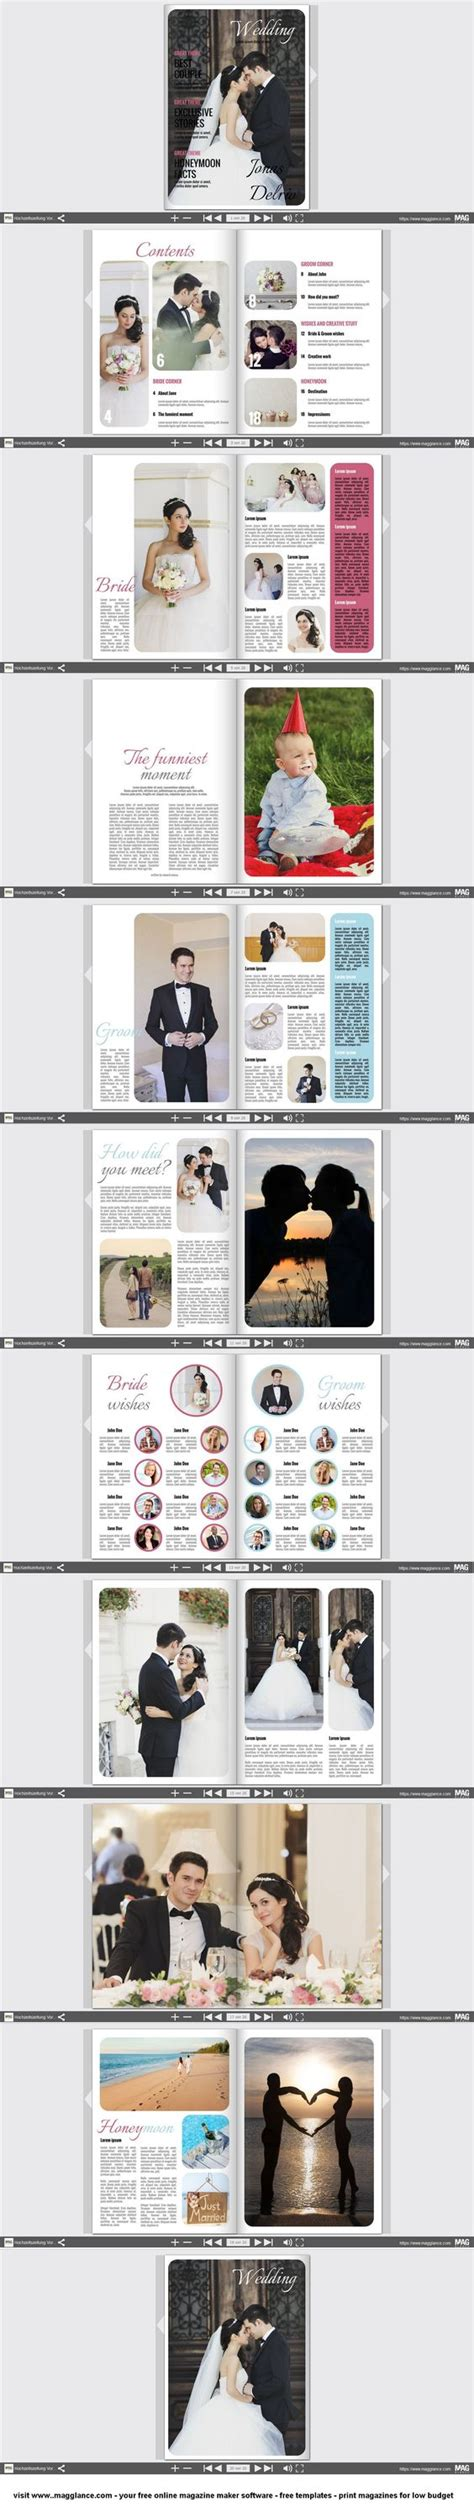 Design Hochzeitszeitung Vorlage Gifts Wedding And Design Templates On